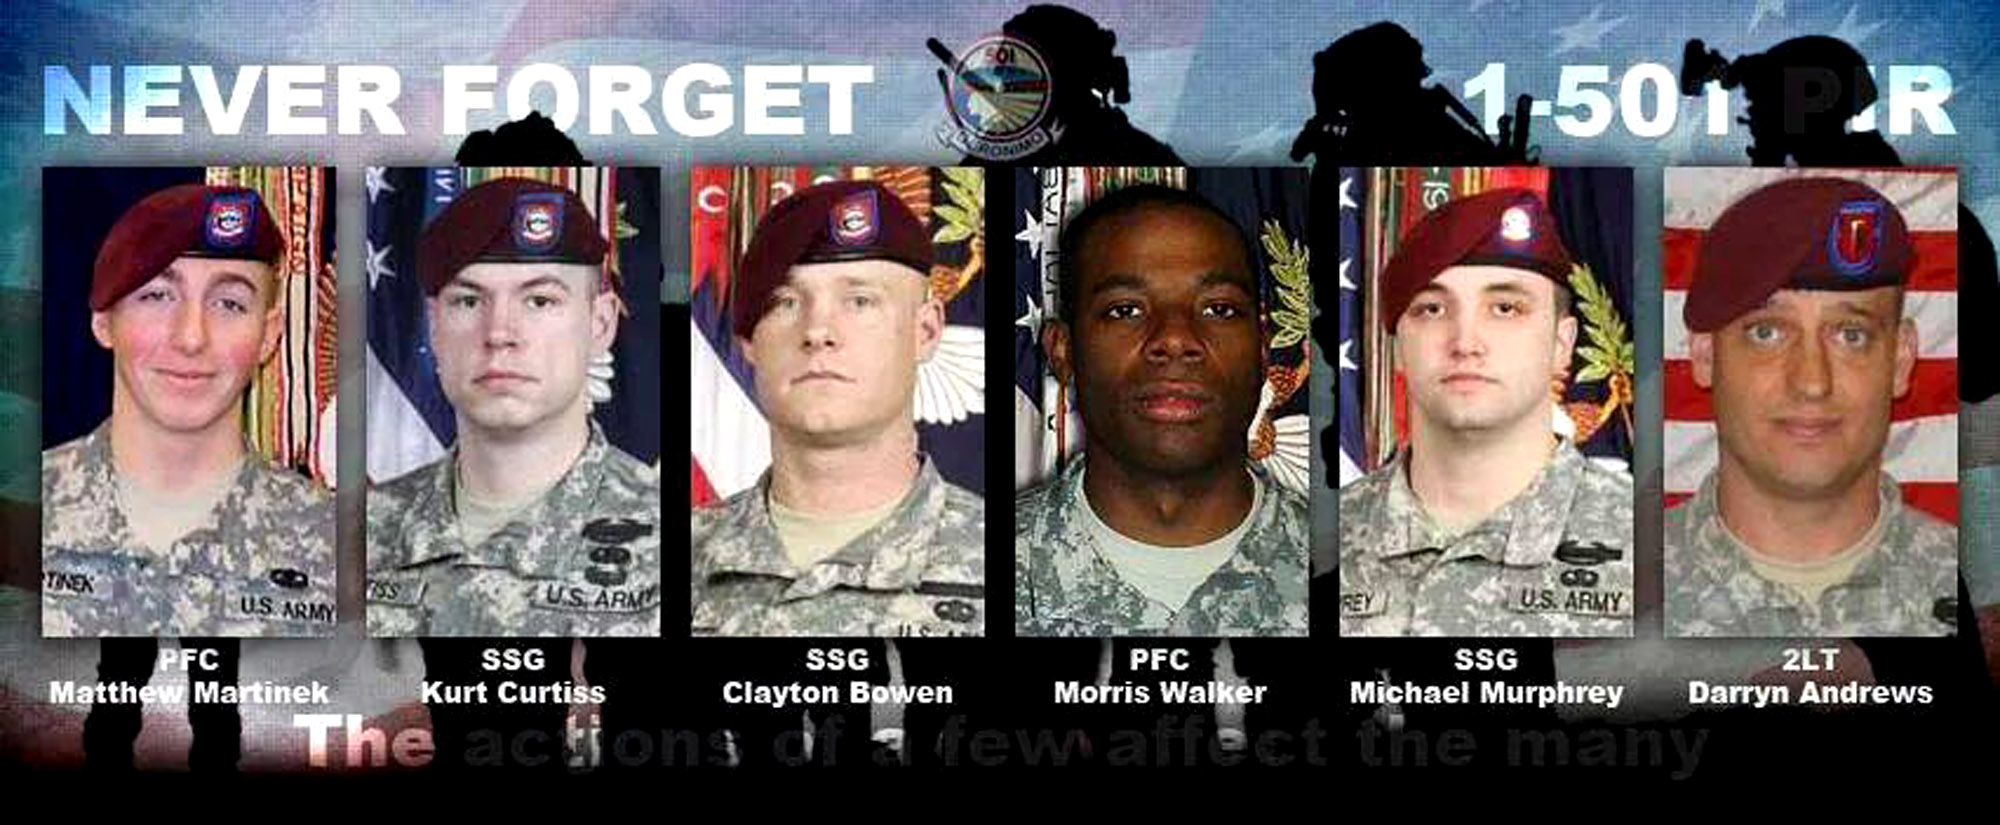 SIX reasons why Bowe Bergdahl should be EXECUTED, not pardoned!